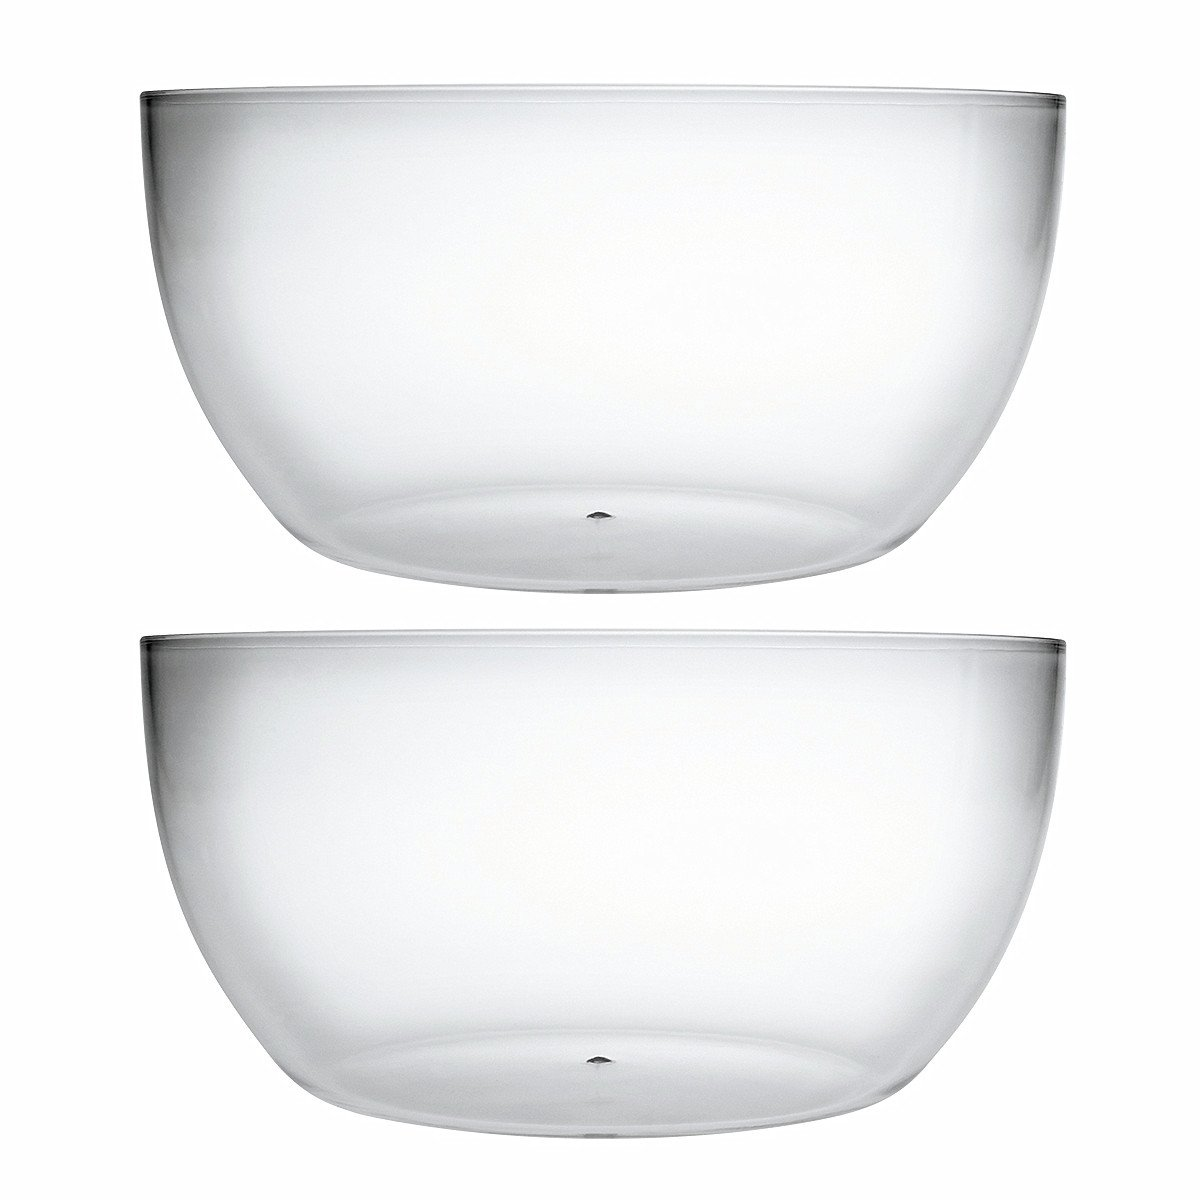 Large Acrylic Mixing And Serving Bowls, Great for Serving Salad, Popcorn, Chips, Dips, Condiments, Break-Resistant Set of 2 Clear 146 oz